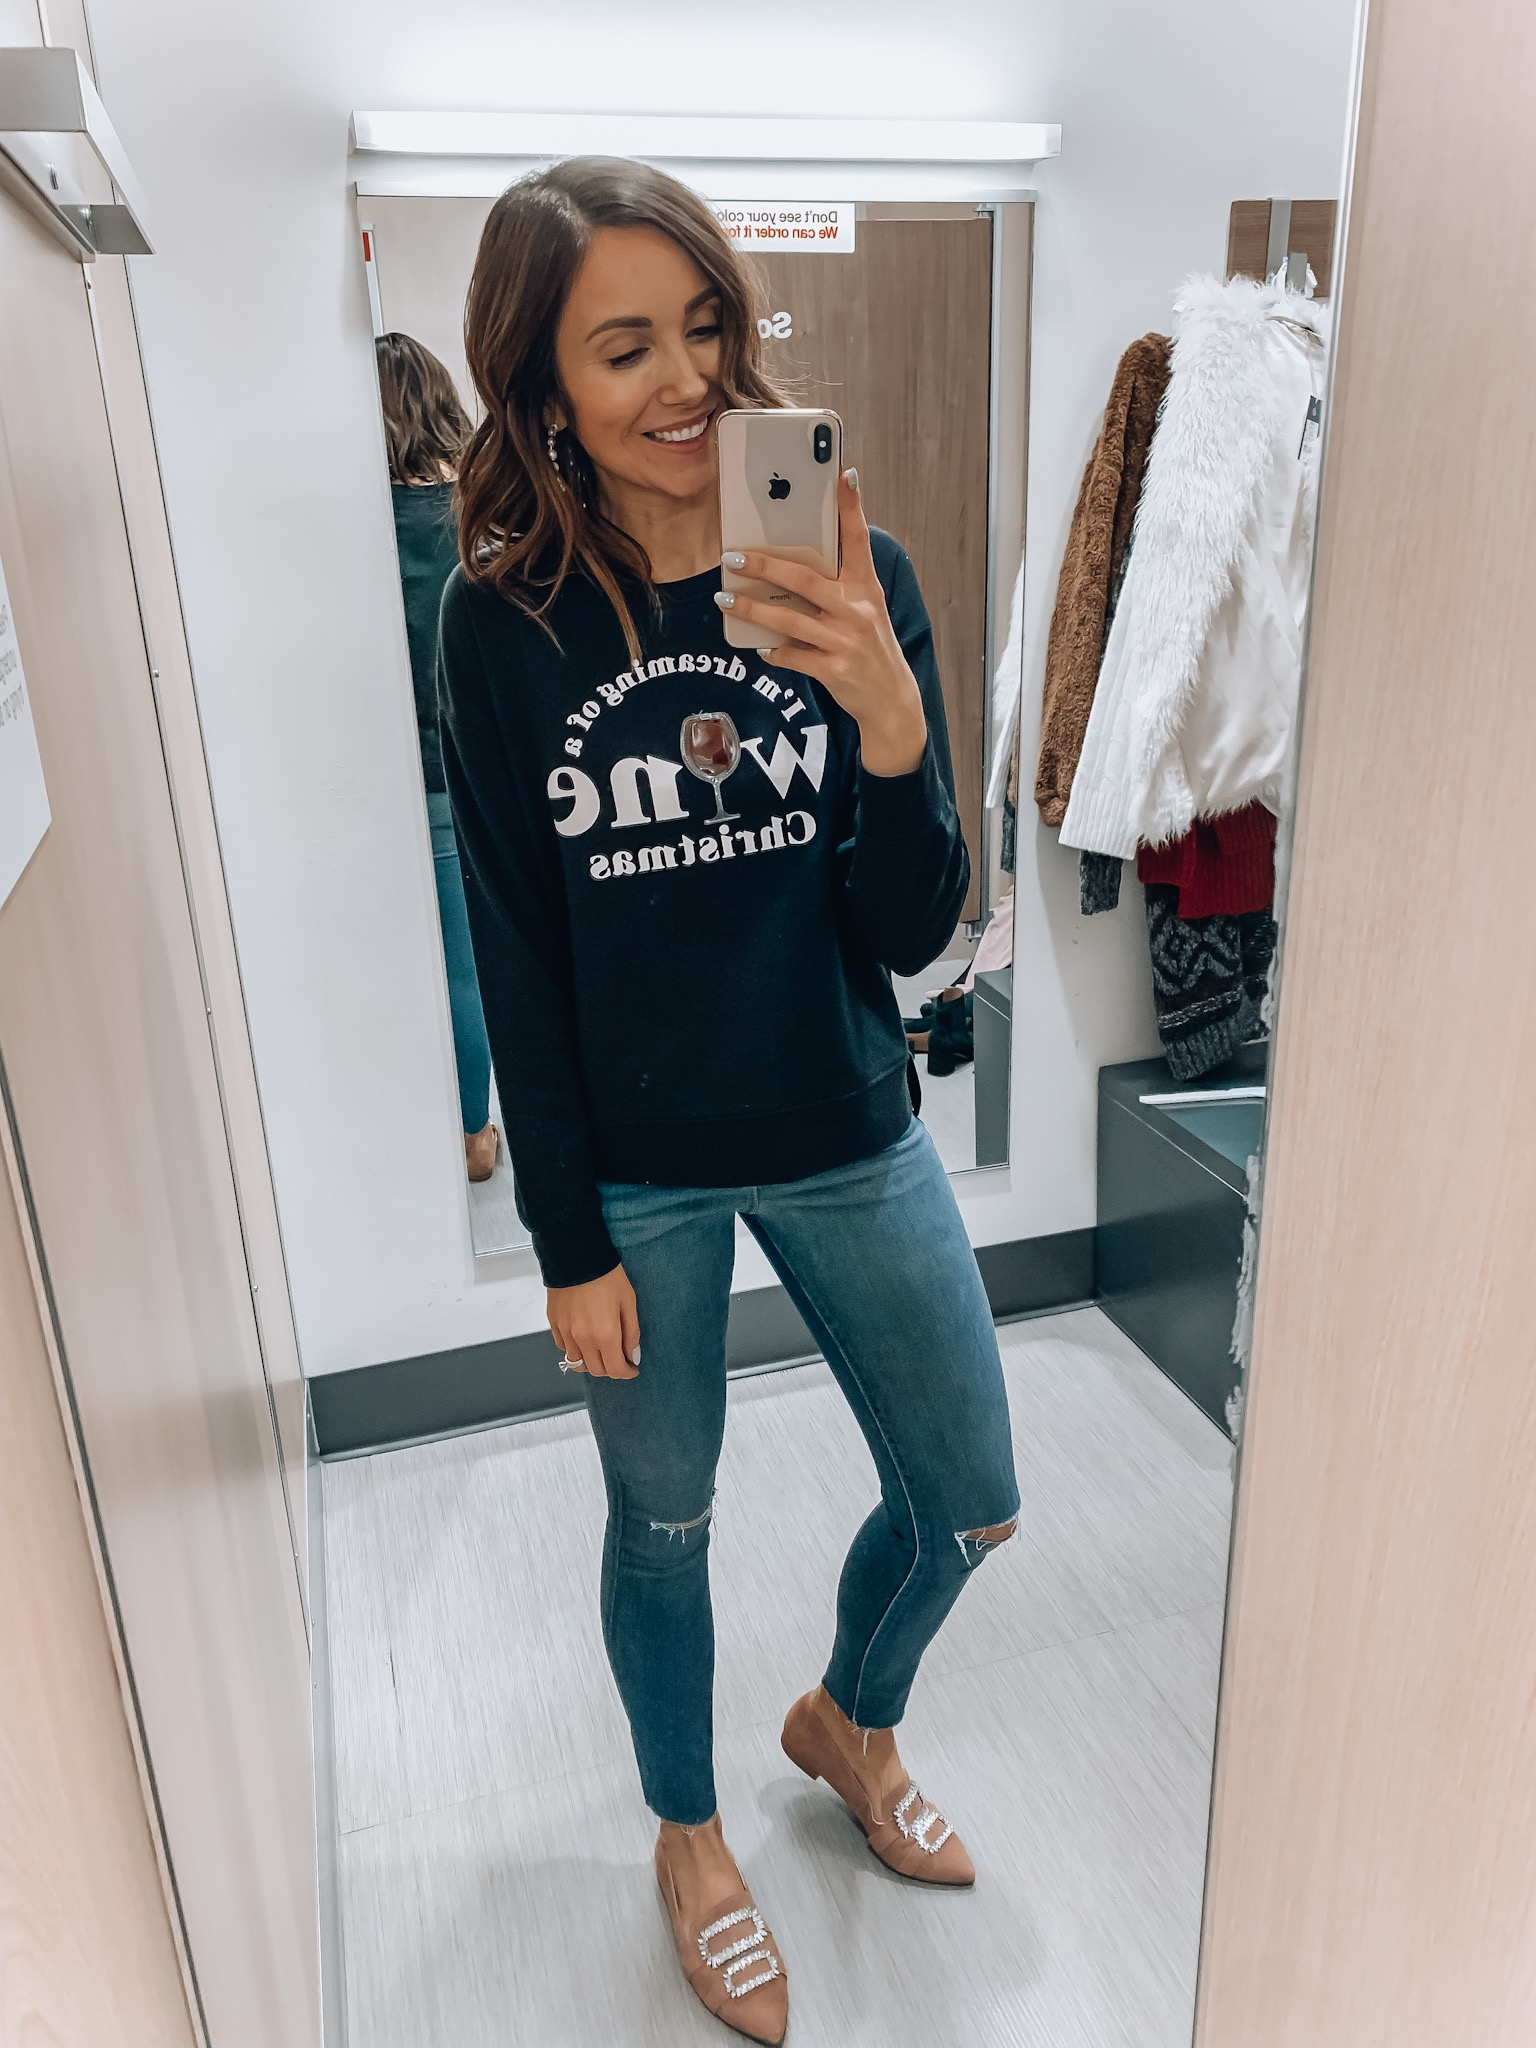 Woman wearing Christmas tee, and Jeans